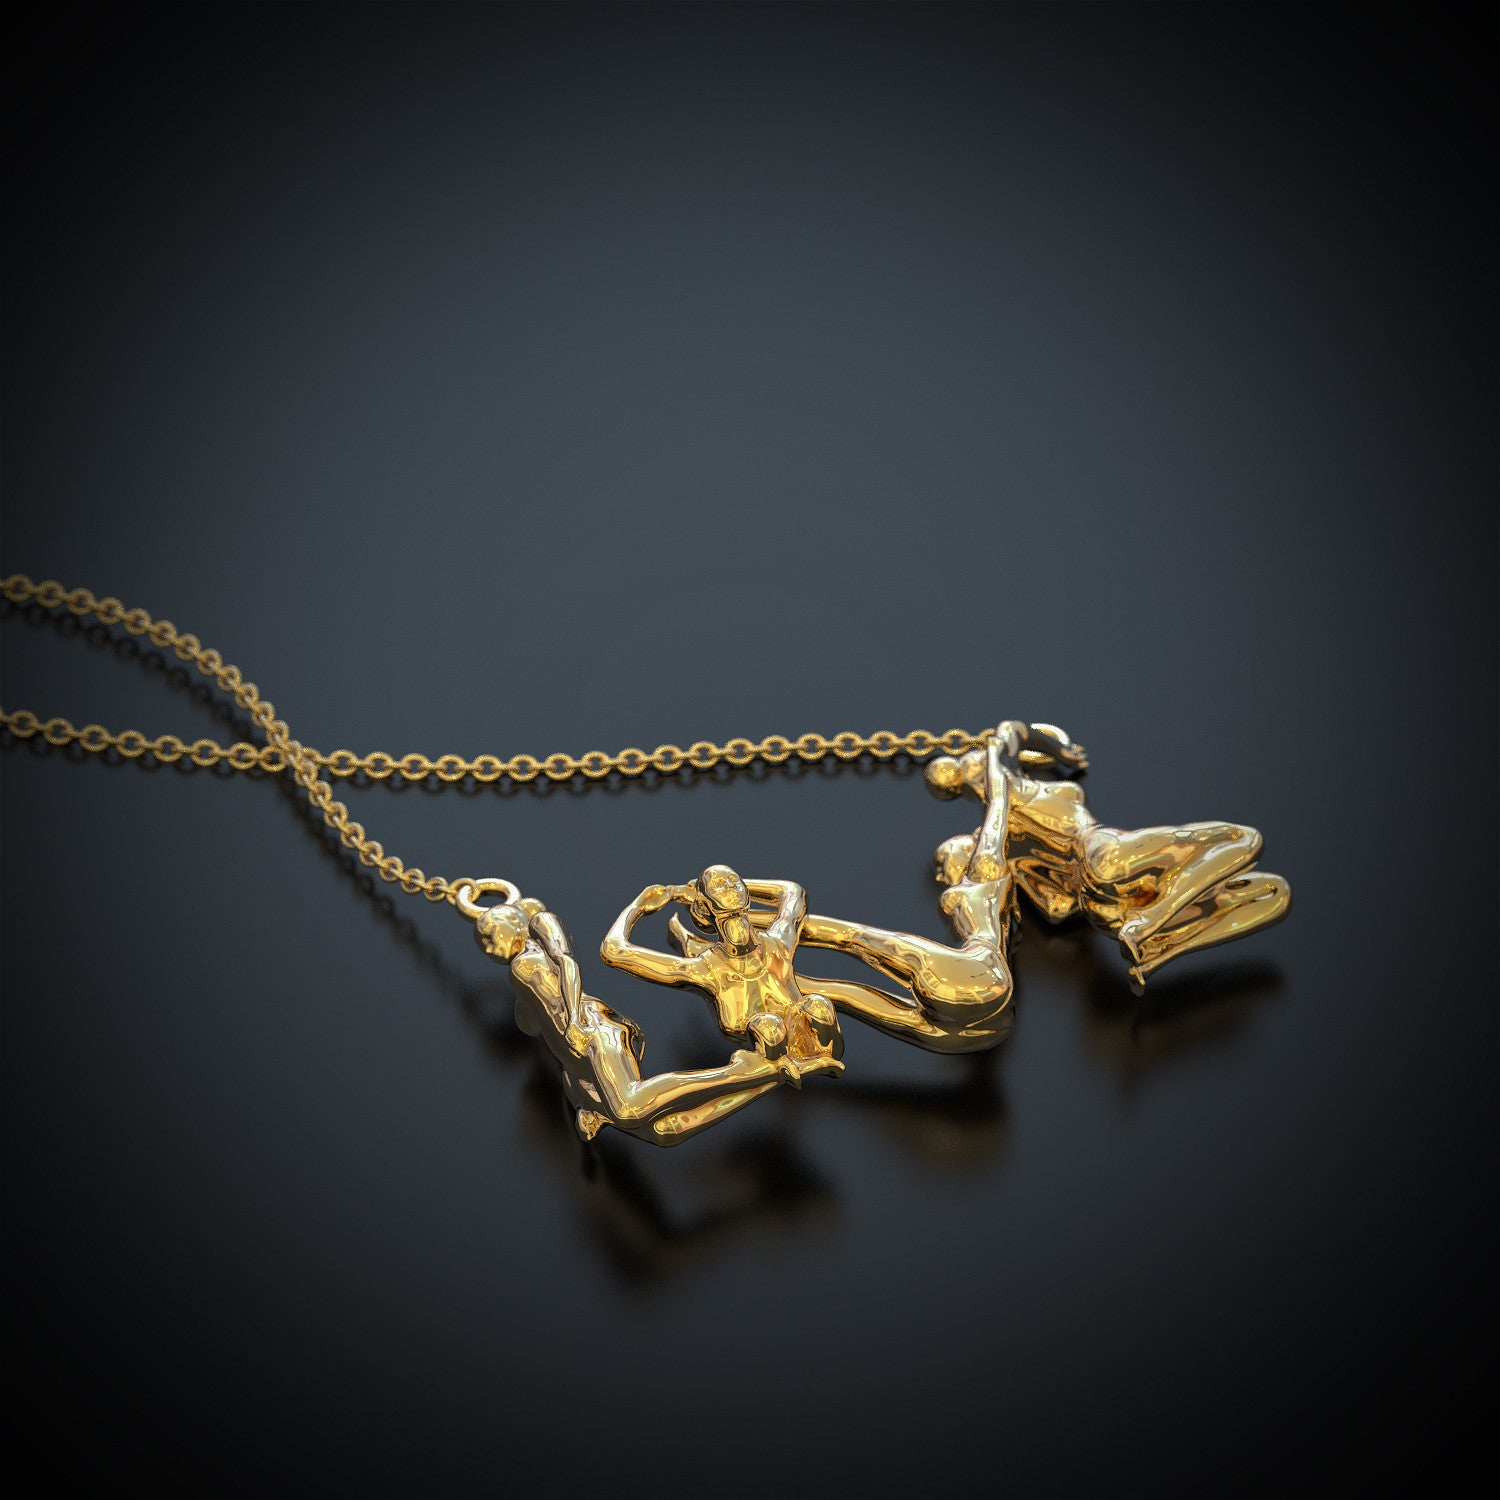 LOVE - Gymnastics Necklace - LIMITED EDITION